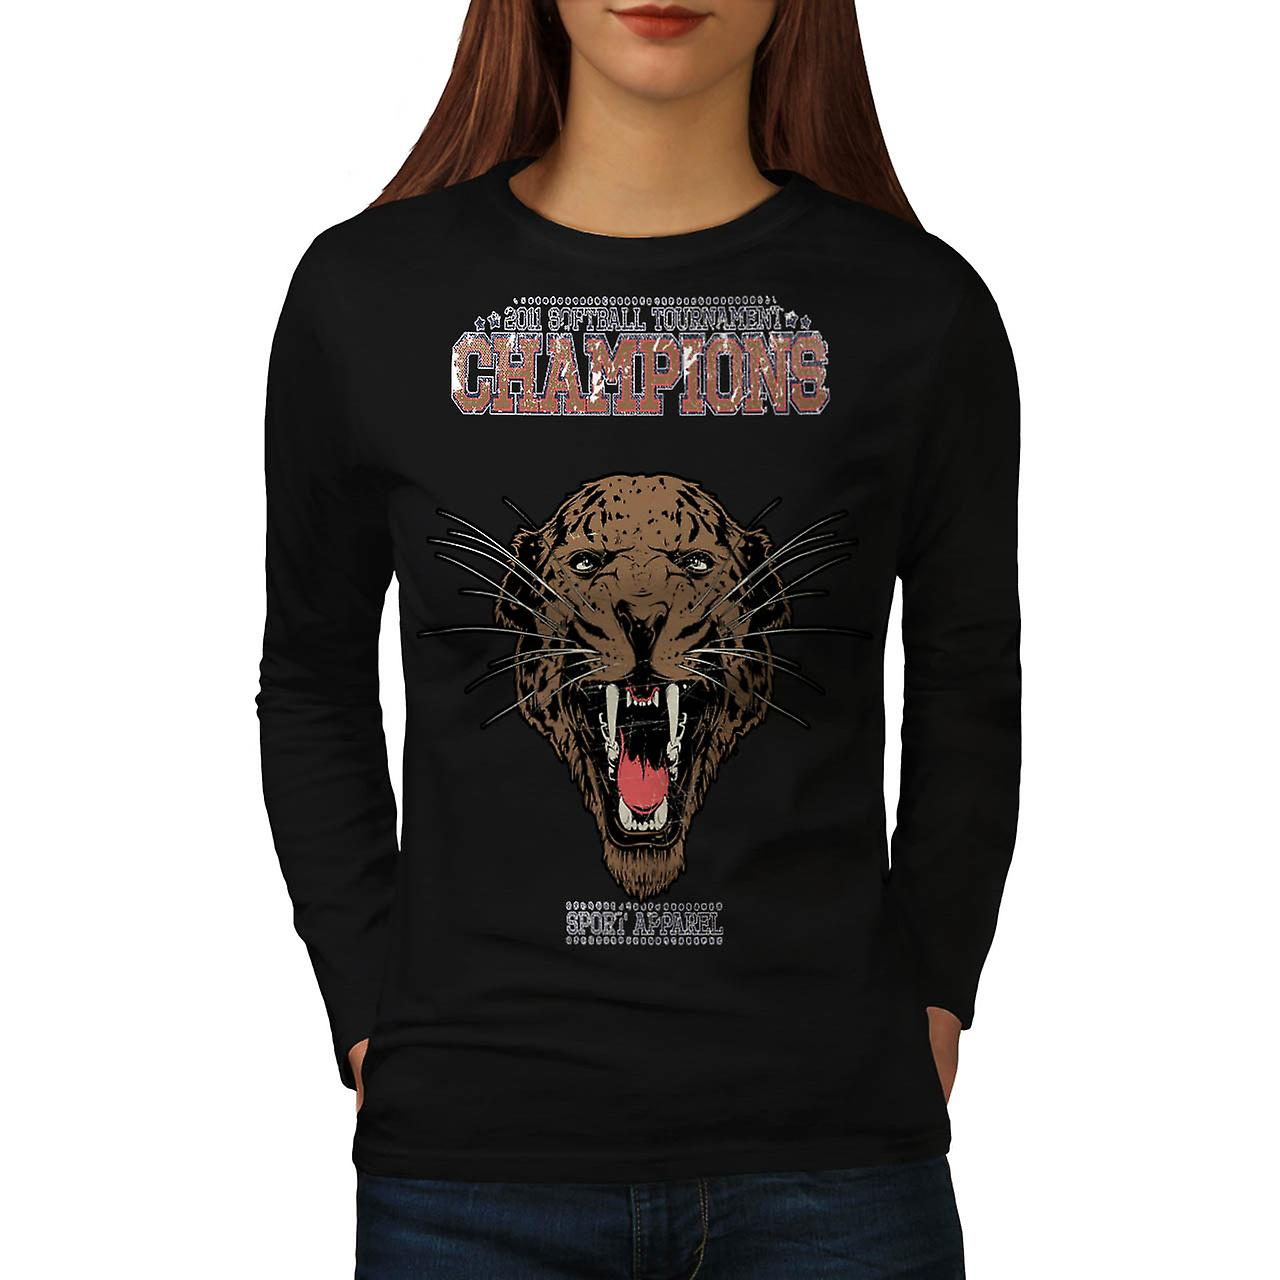 Cougar Sports Team Champions donna manica lunga t-shirt nera | Wellcoda